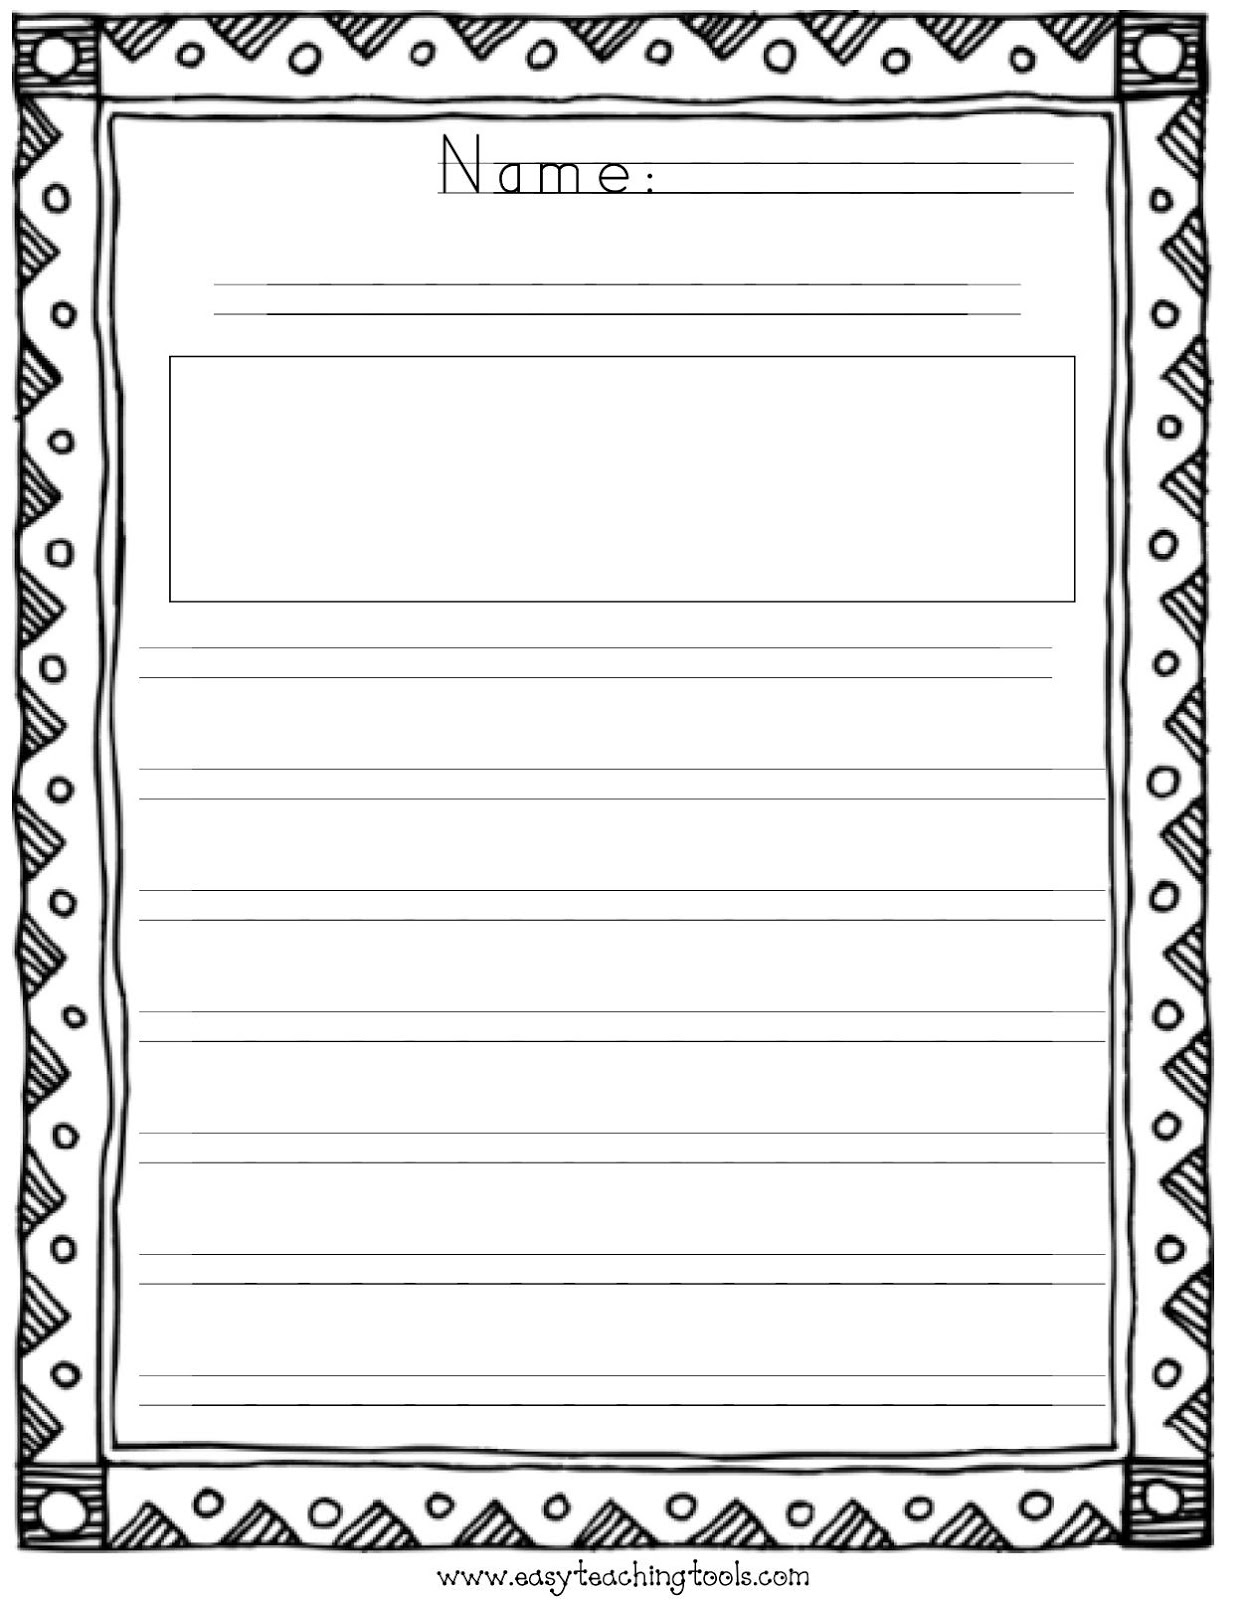 Handwriting Without Tears Cursive Paper Pictures to Pin on – Handwriting Without Tears Worksheets